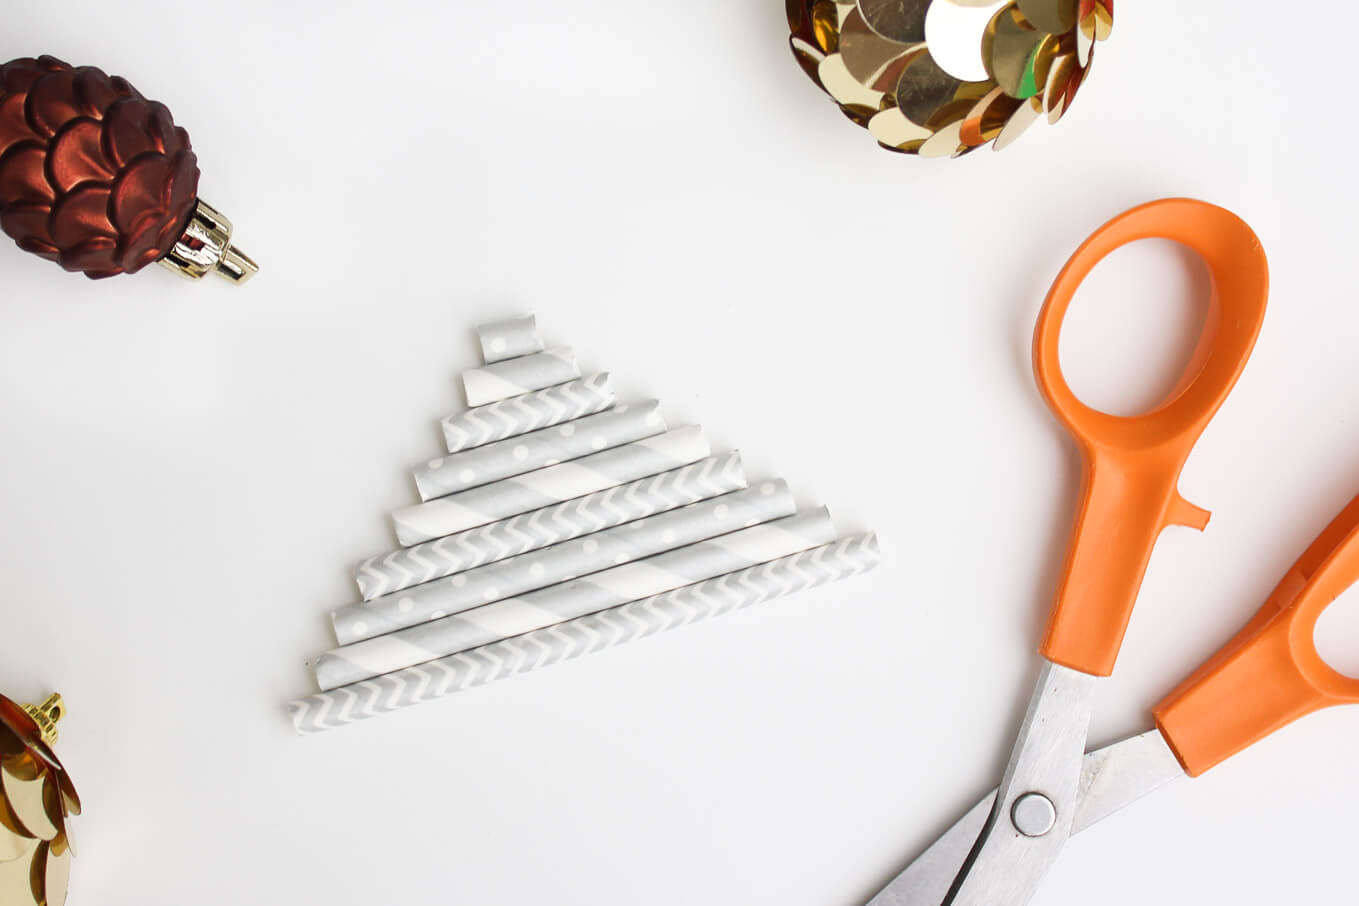 How to make stunning DIY Christmas ornaments from paper straws. Super easy and cheap craft idea for both kids and adults. The result is both charming and sophisticated. Click to view full tutorial!